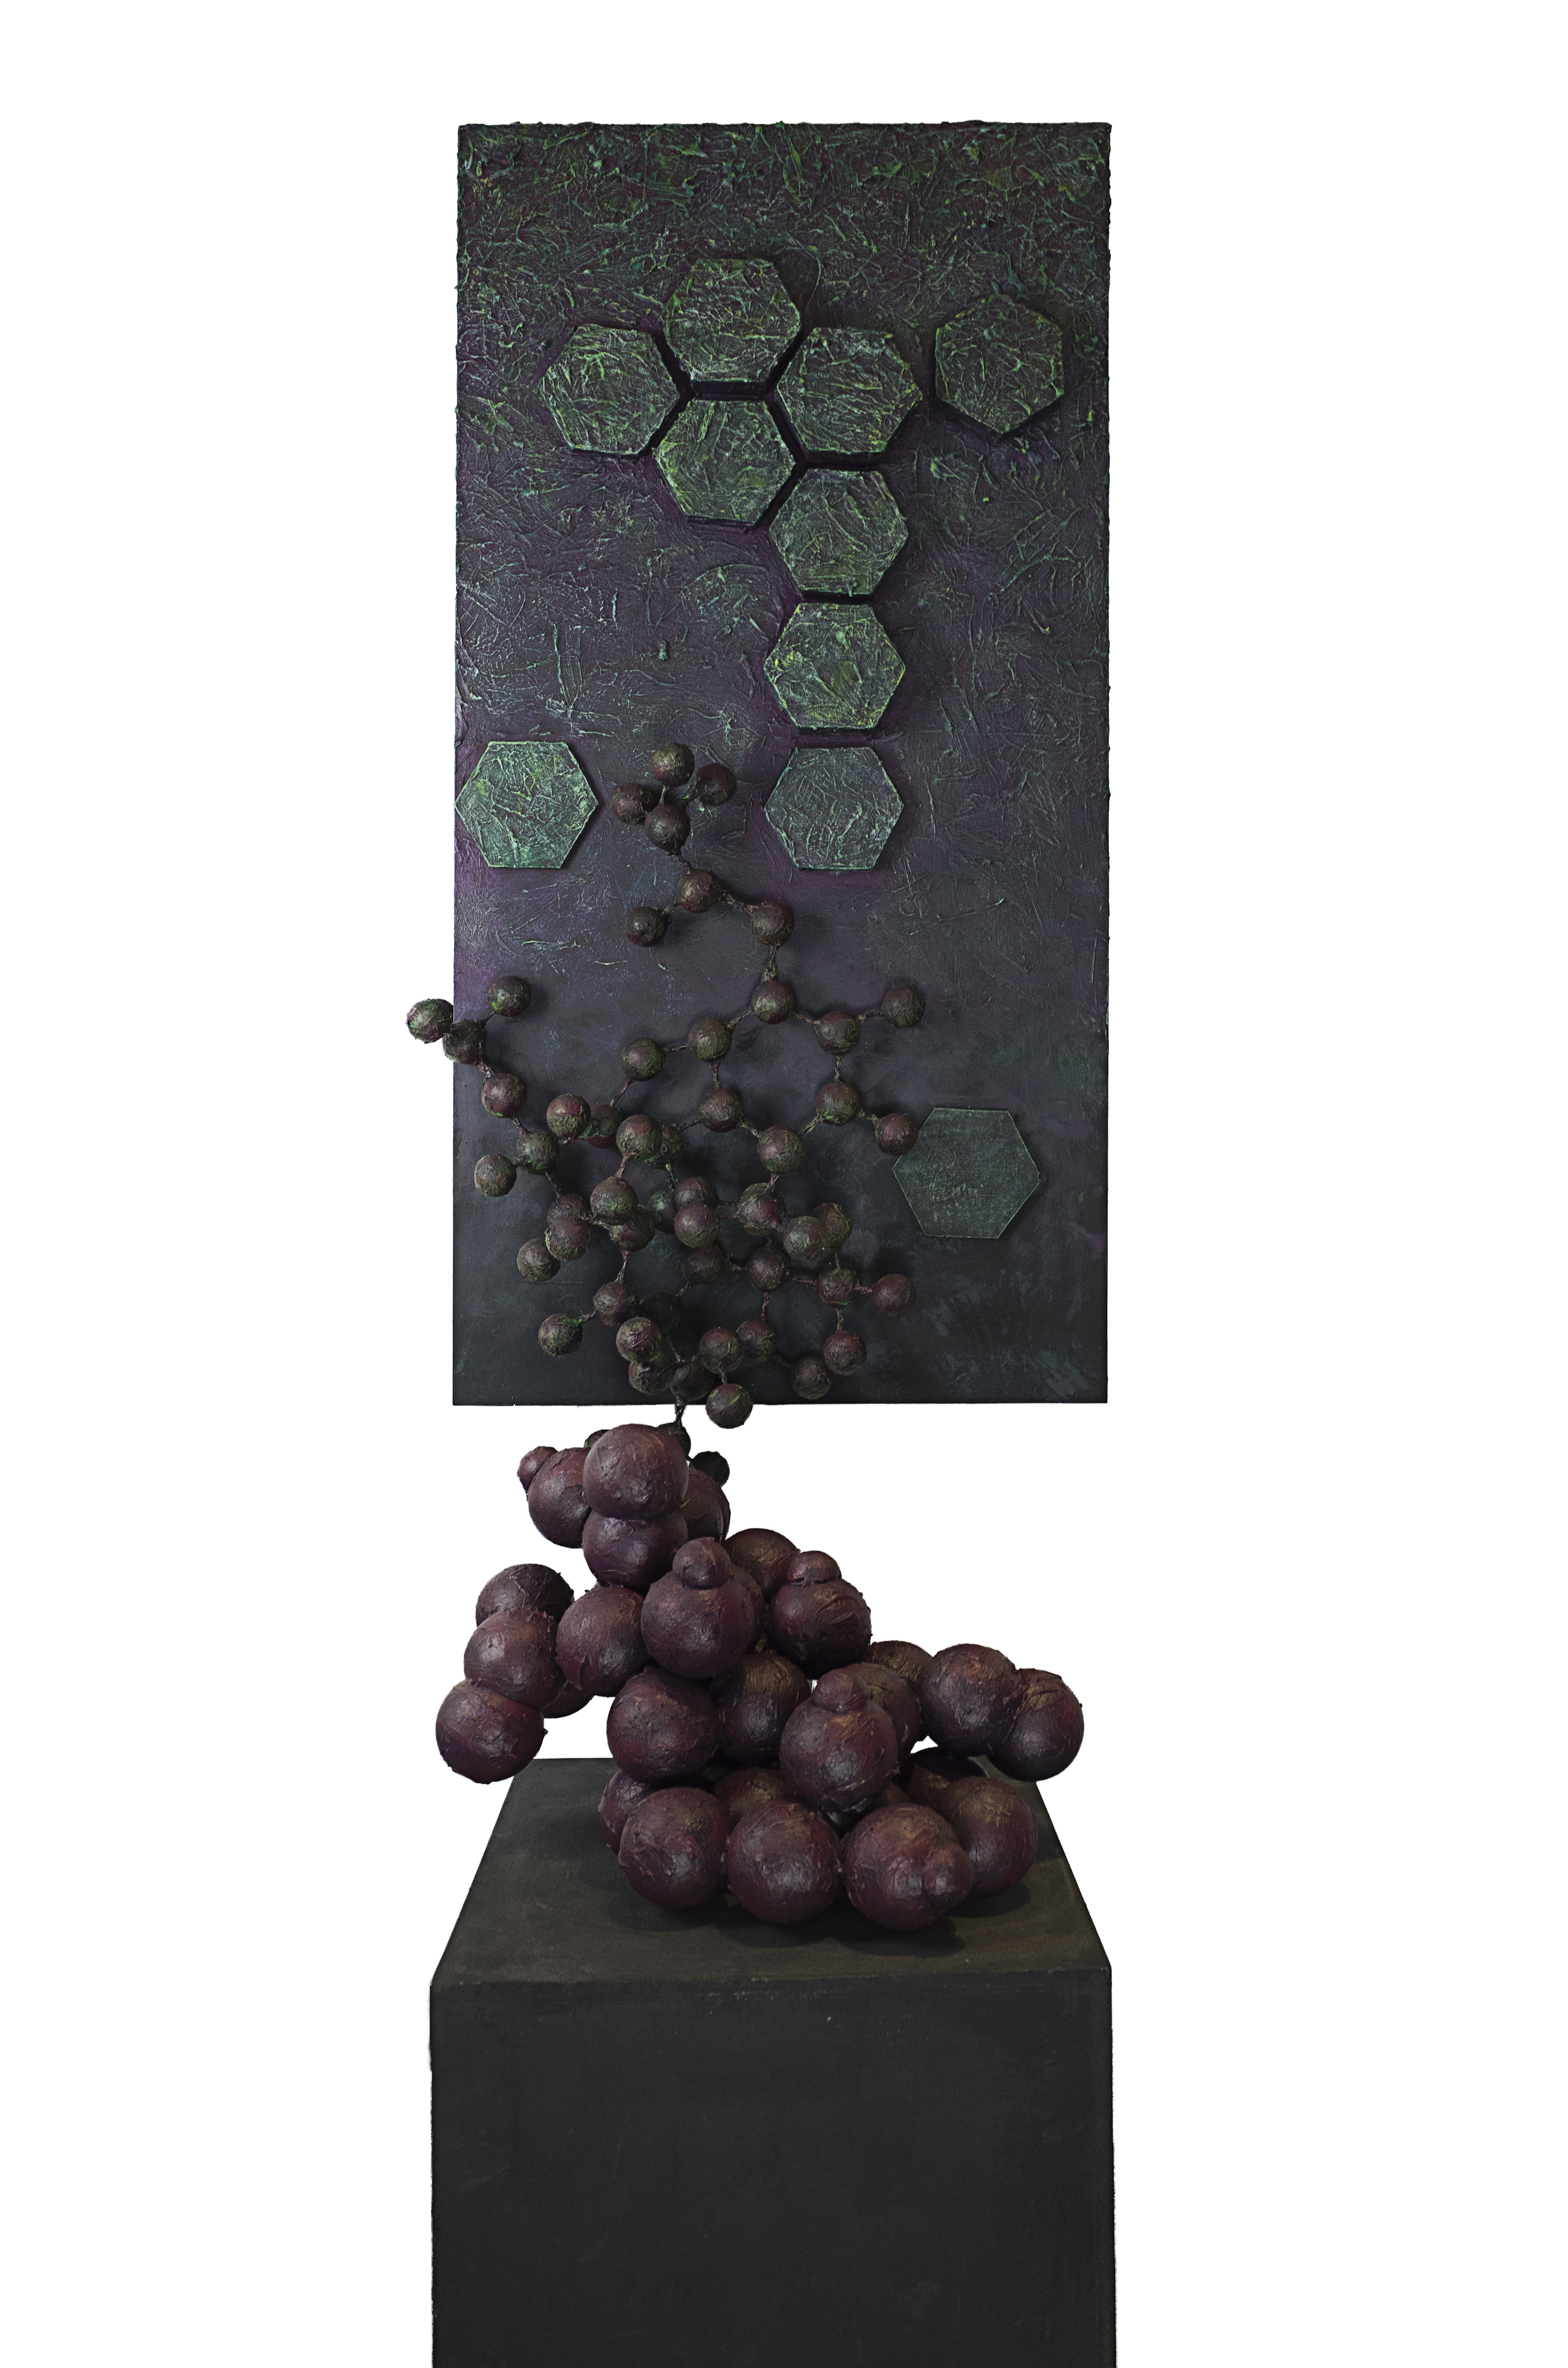 Molecular Manifestation  150 x 65 x 65 cm Mixed Media